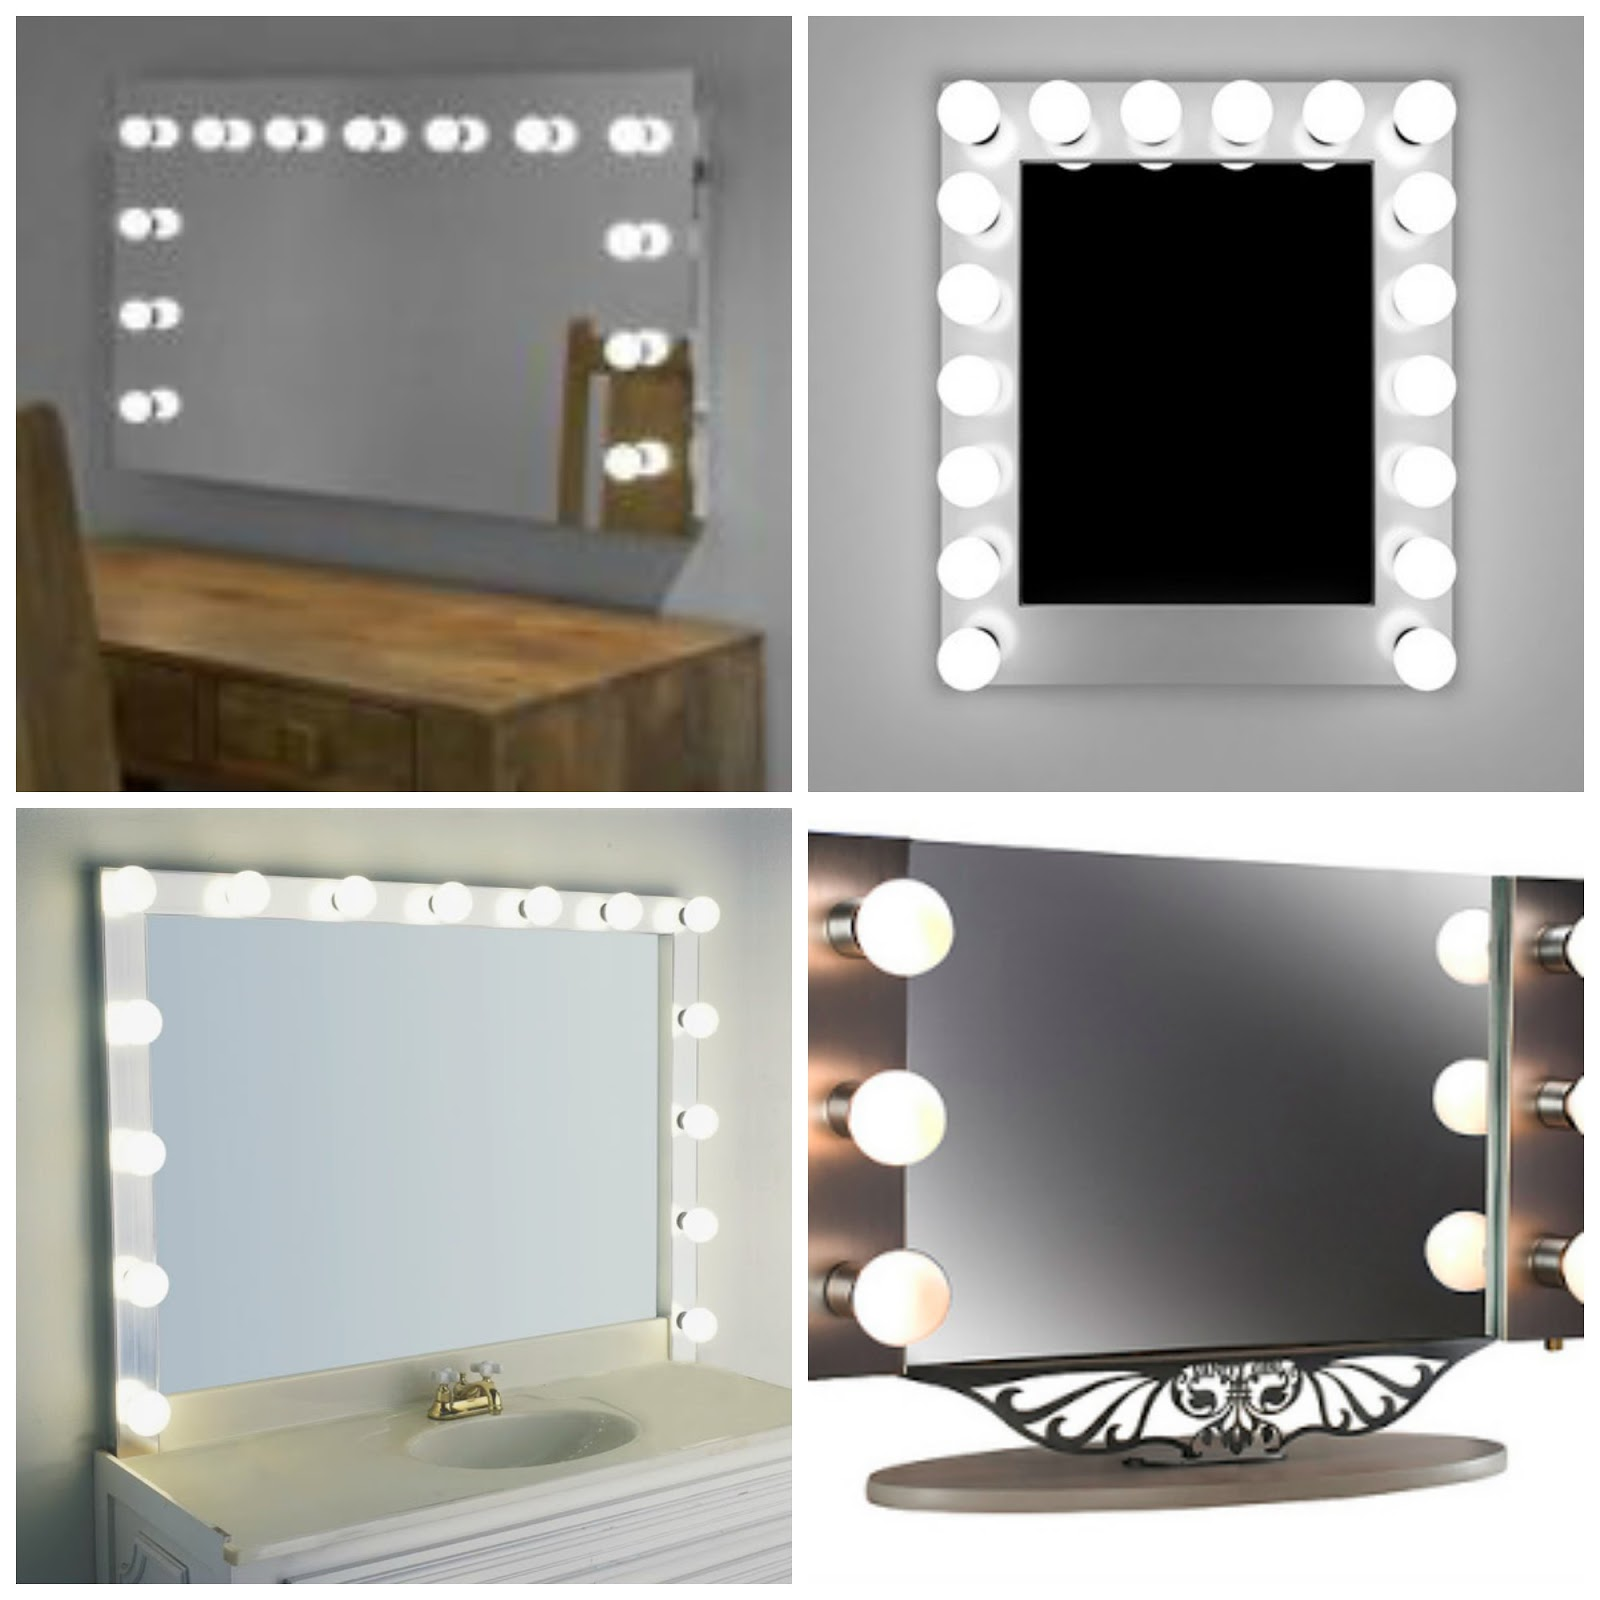 Vanity Mirror With Lights Dressing Room : Ashly Rae Beauty, Lifestyle, Health, Fitspo and inspiration: Home Decor Dressing Table Ideas ...